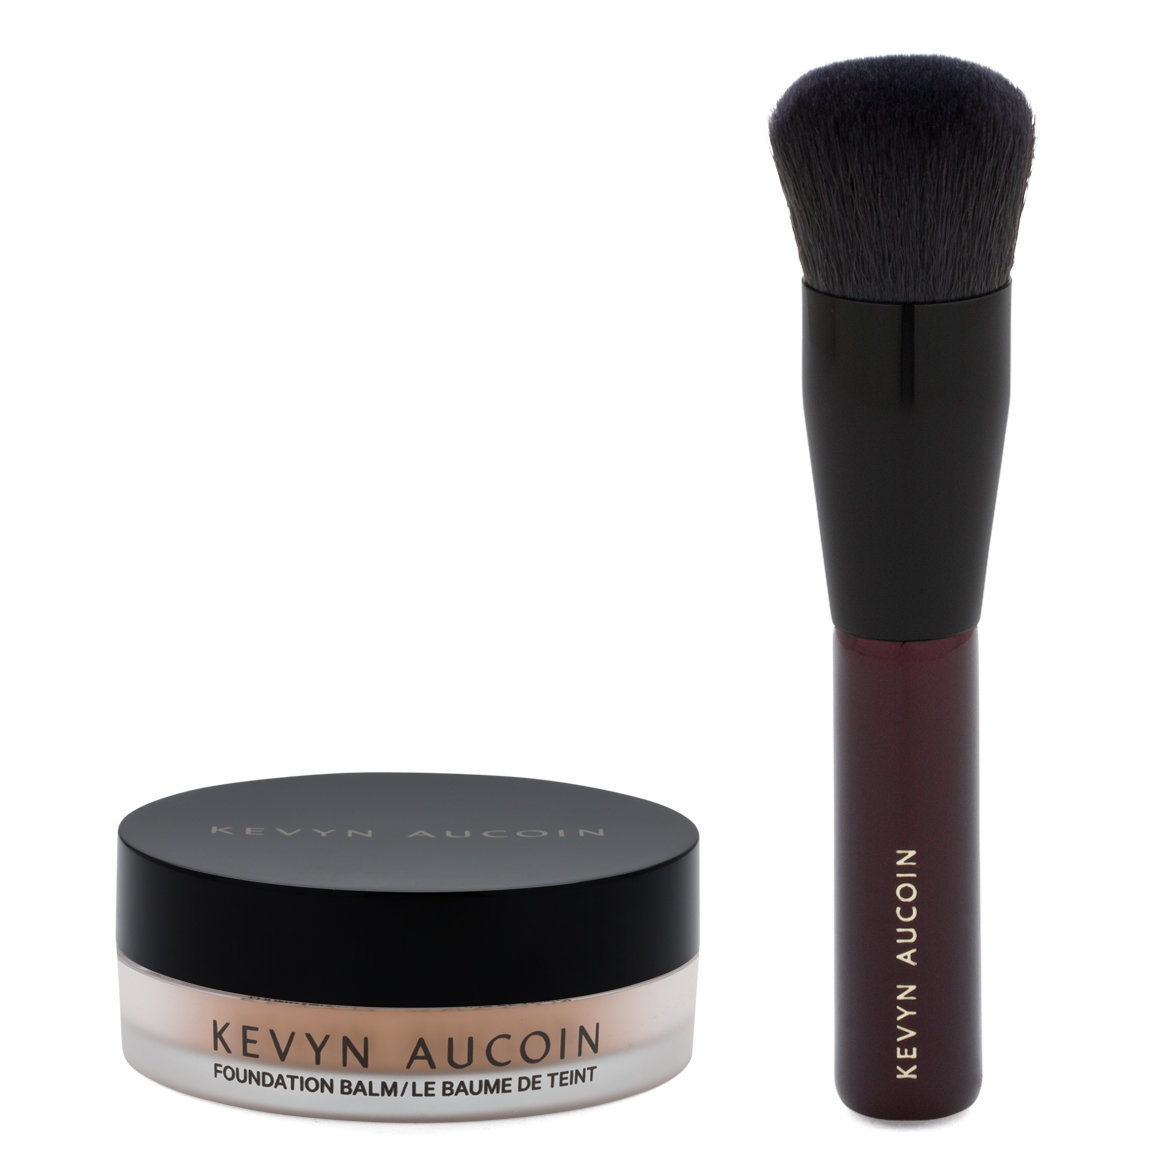 Kevyn Aucoin Foundation Balm FB 08